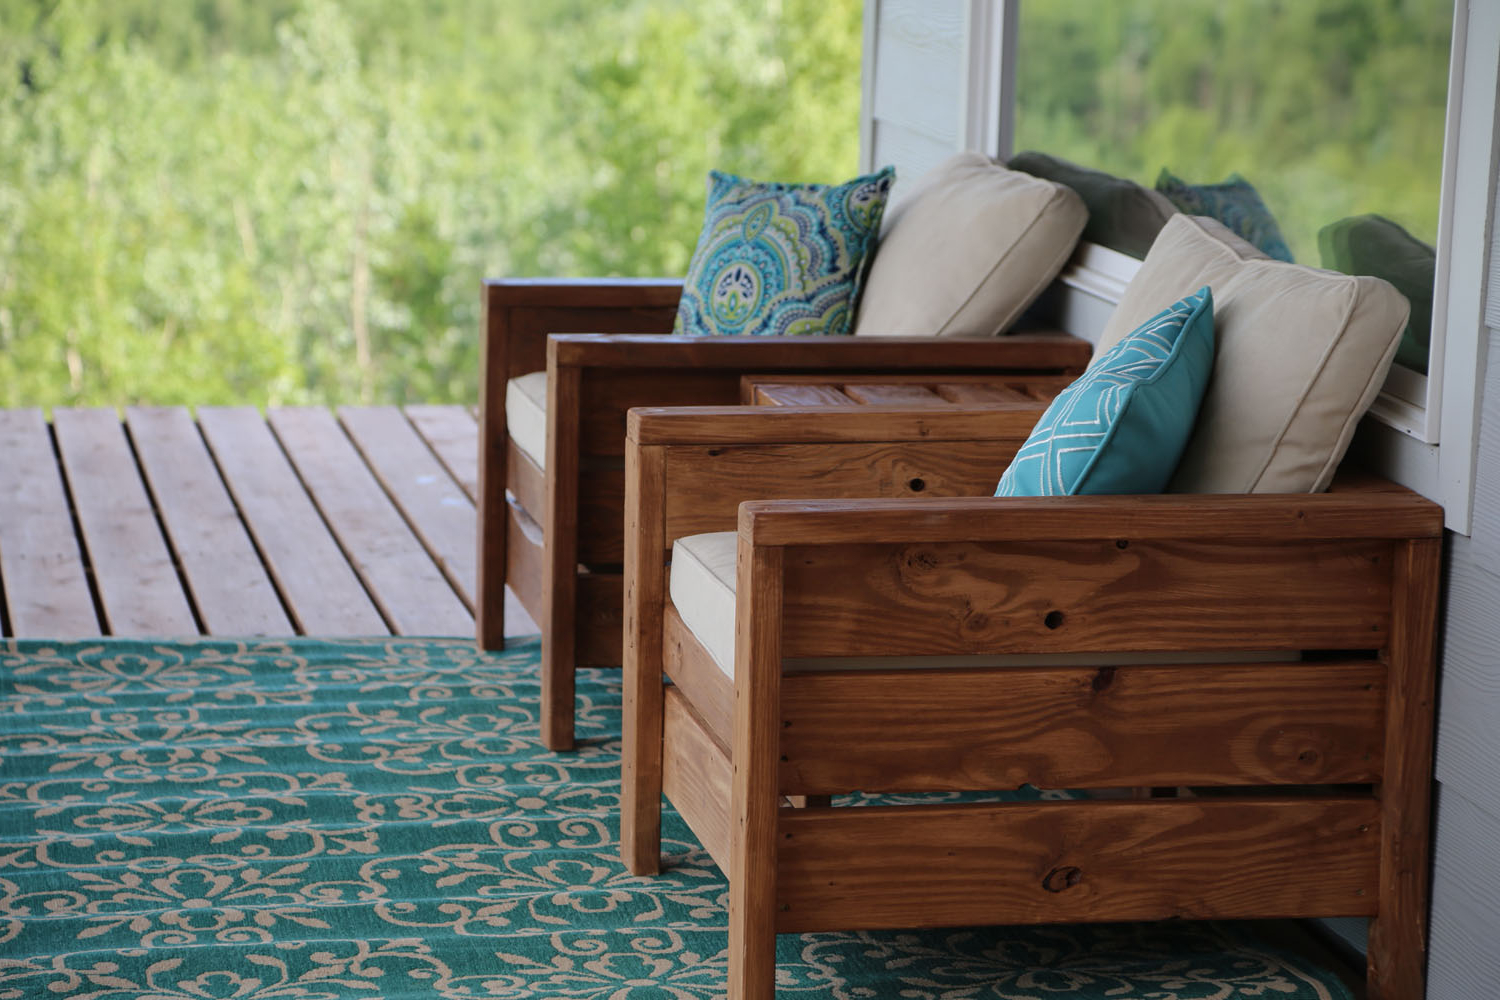 Modern Outdoor Chair From 2x4s And 2x6s – Diy Projects (View 6 of 20)